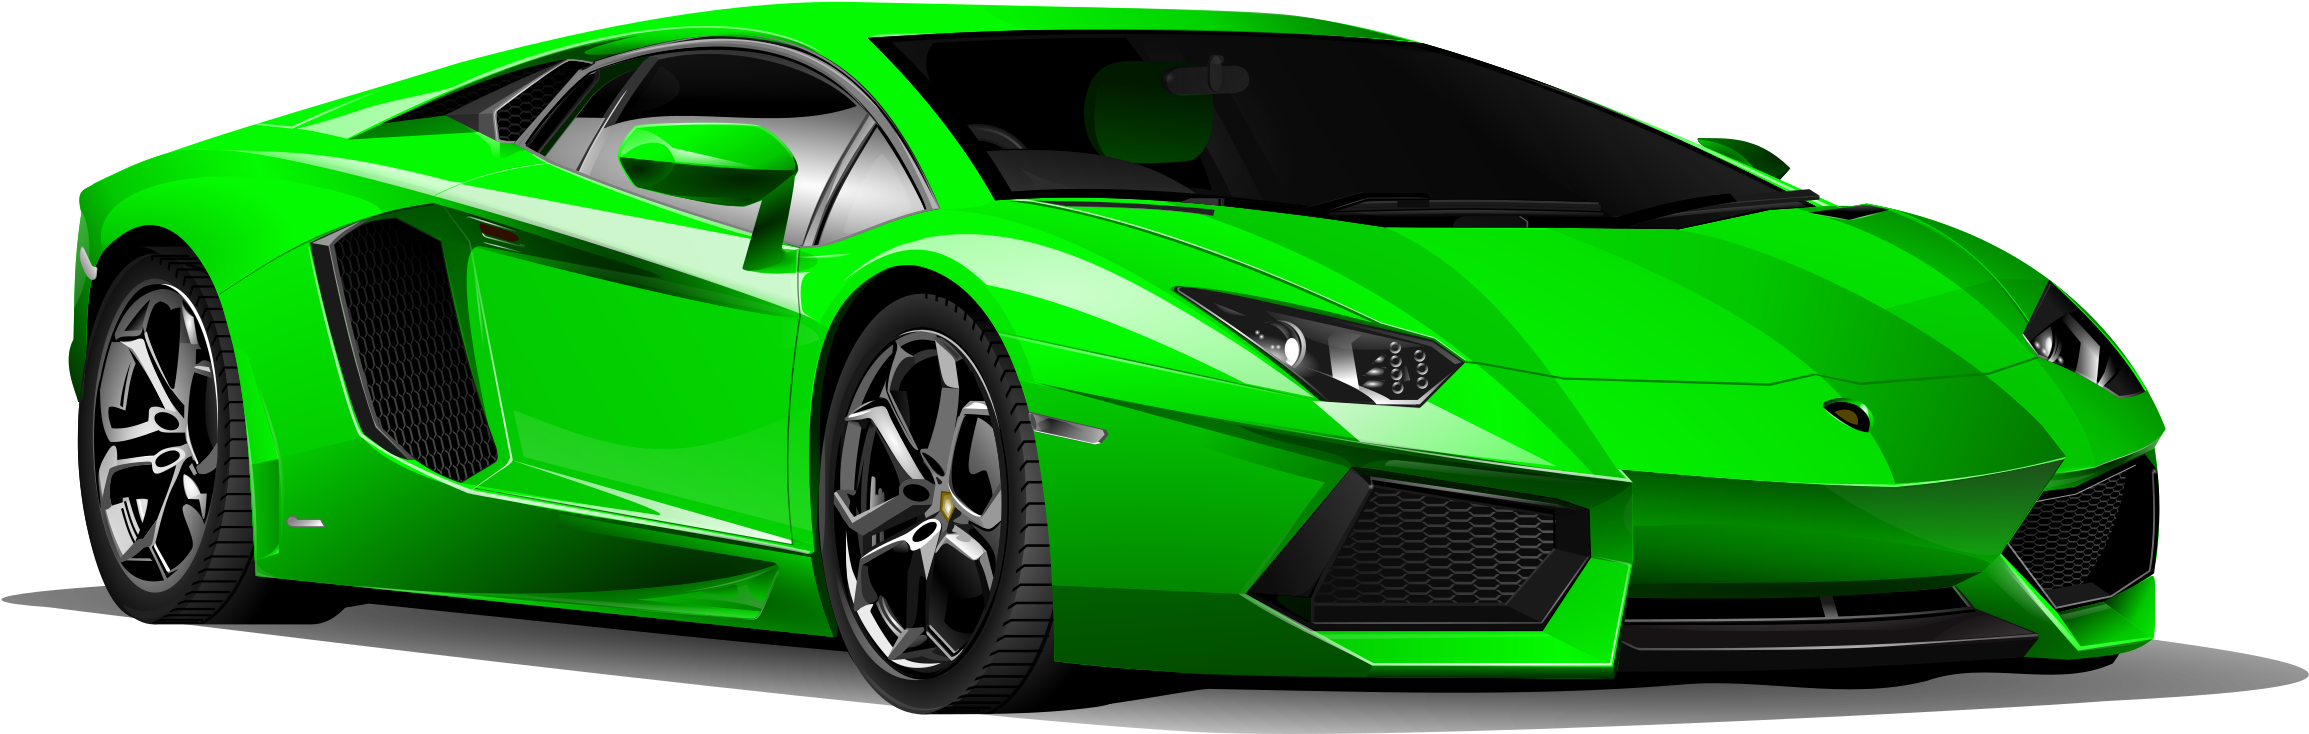 Lamborghini Clipart Sportscar Green Car Png Download Full Size Clipart 788497 Pinclipart